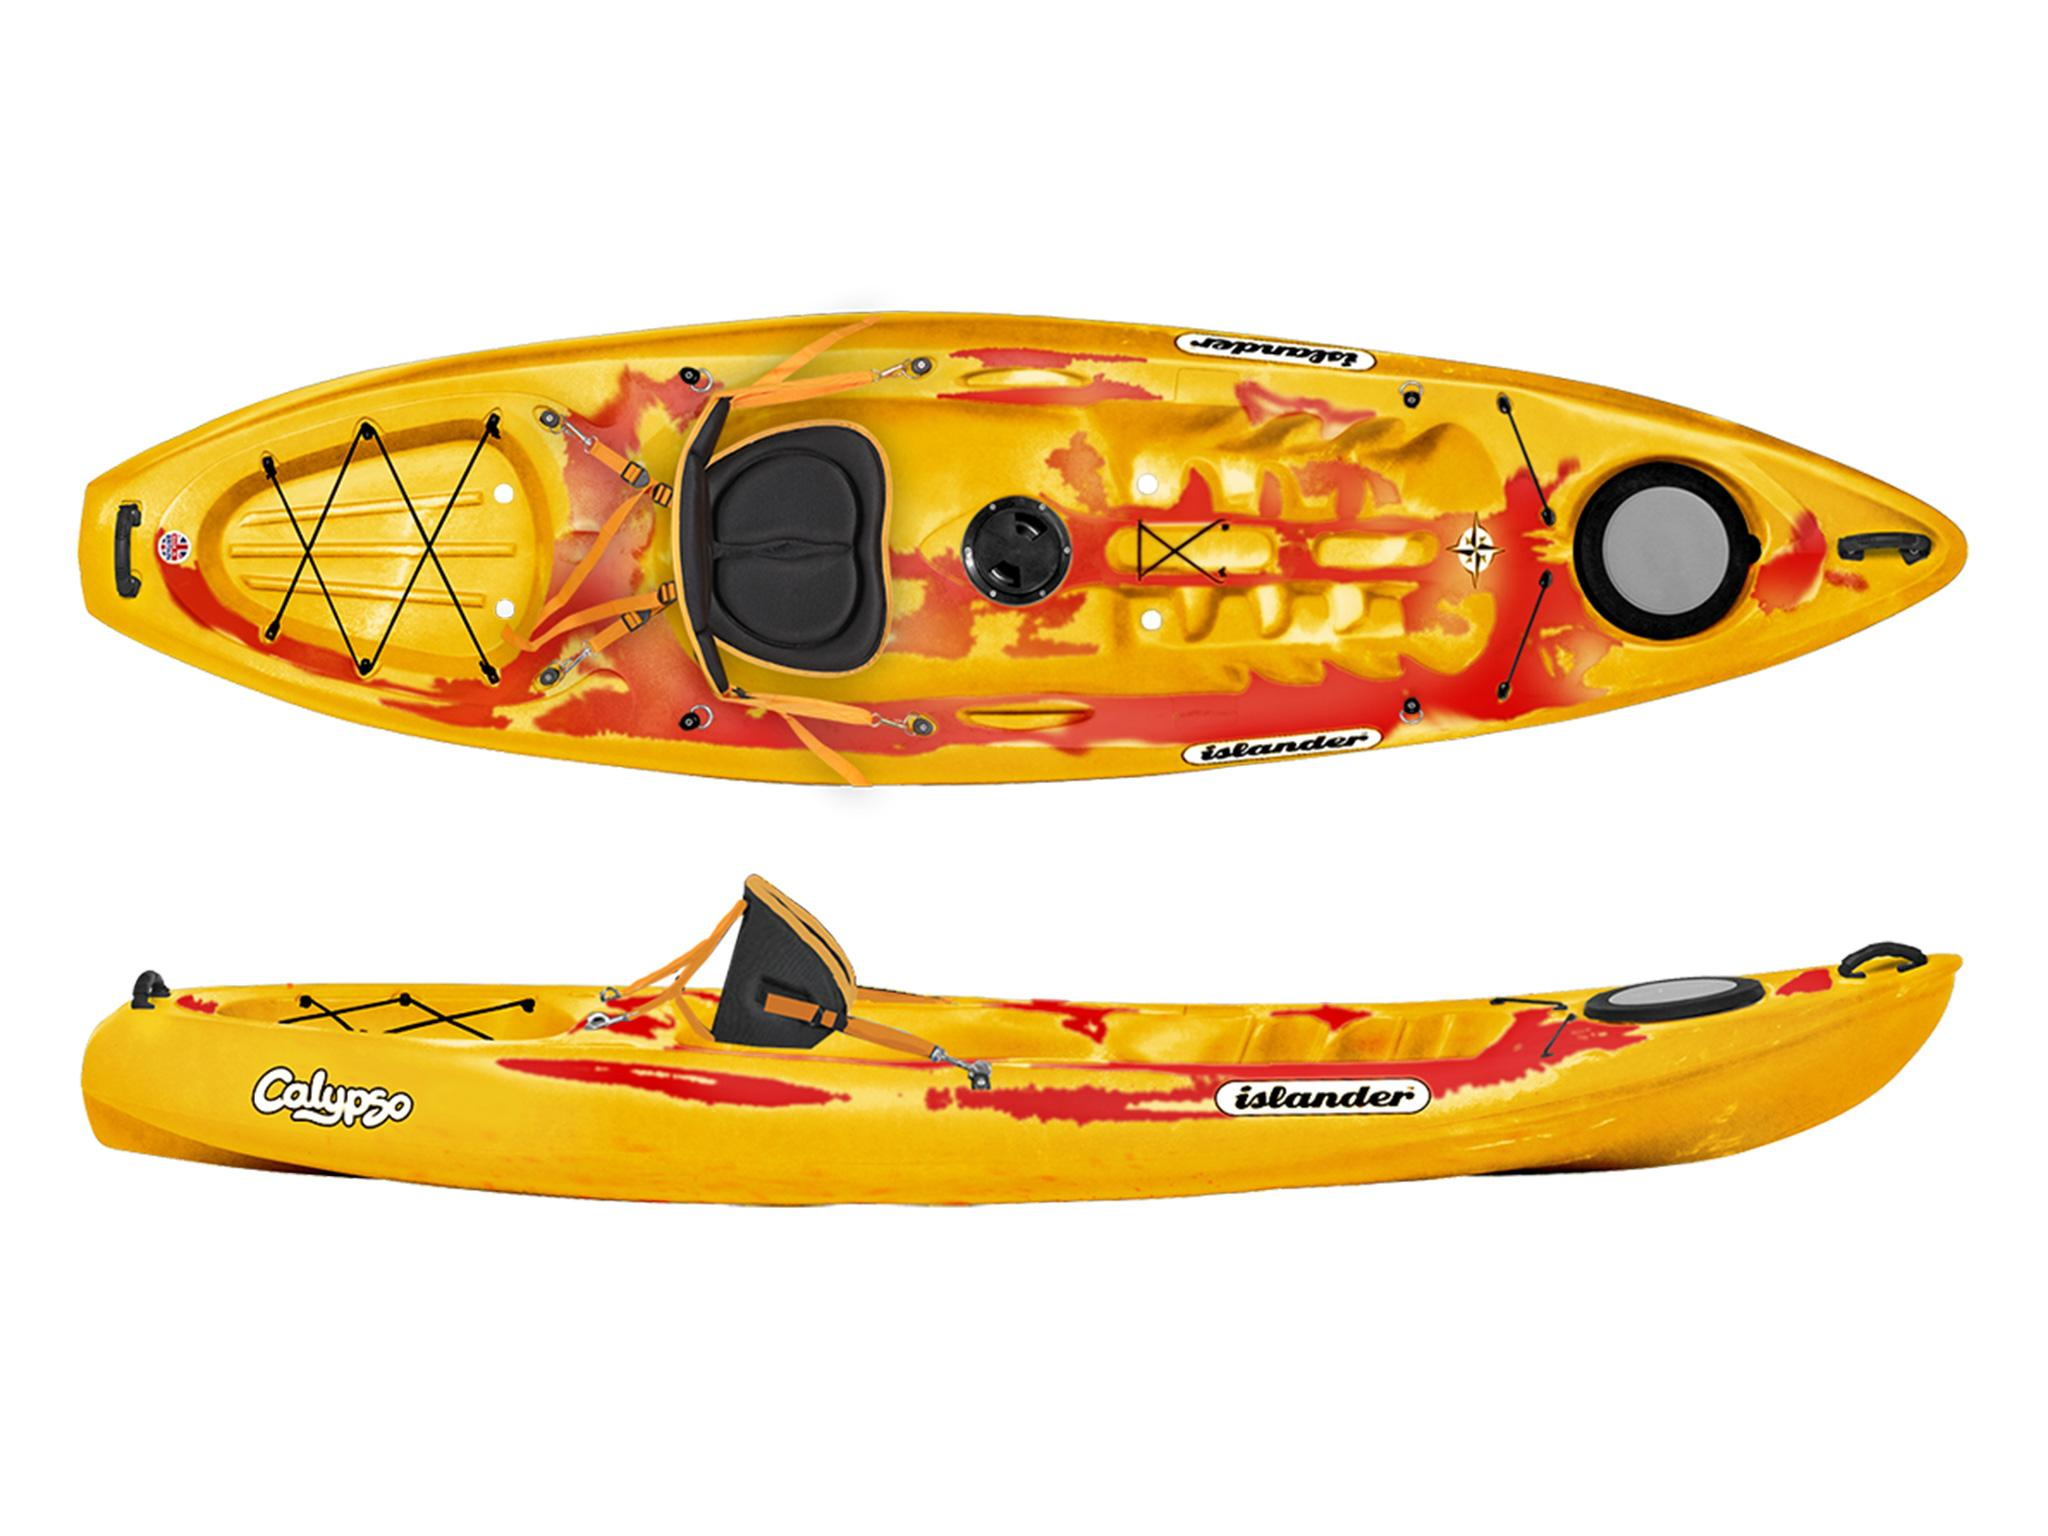 10 best sit-on-top kayaks | The Independent